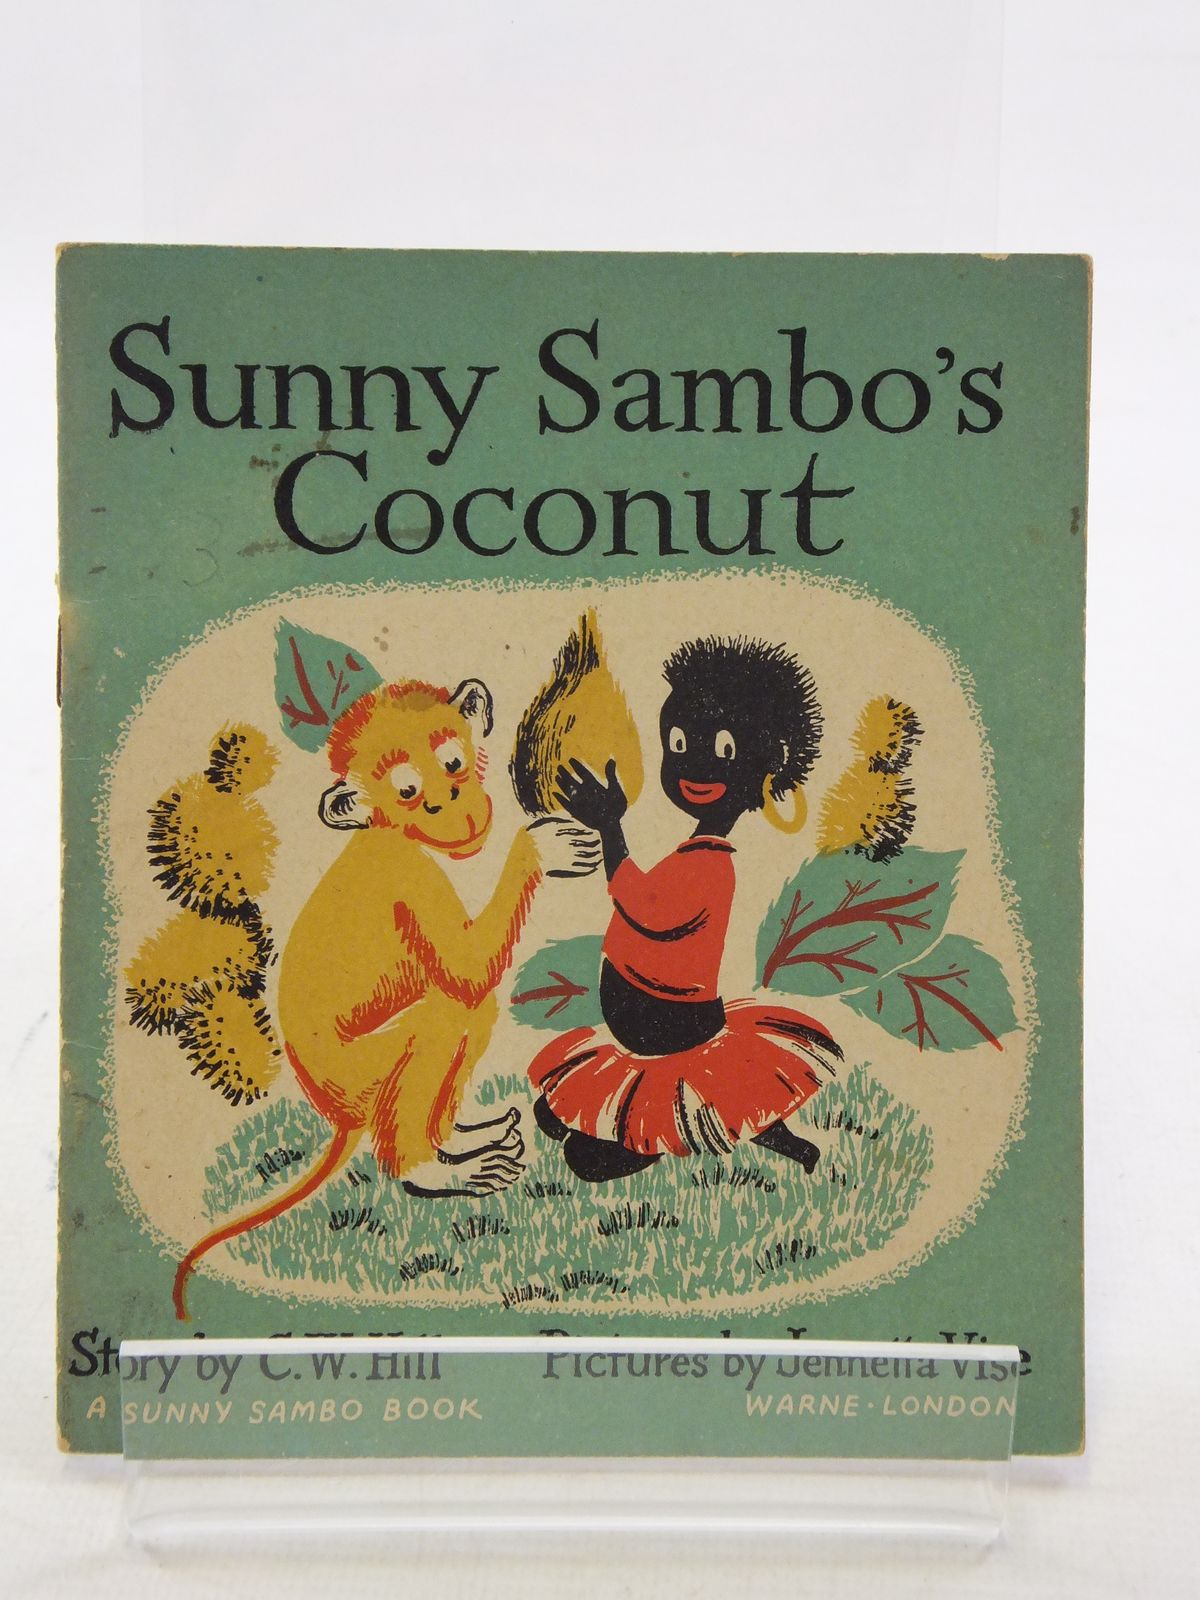 Photo of SUNNY SAMBO'S COCONUT written by Hill, C.W. illustrated by Vise, Jennetta published by Warne, Eden Press (STOCK CODE: 1108996)  for sale by Stella & Rose's Books